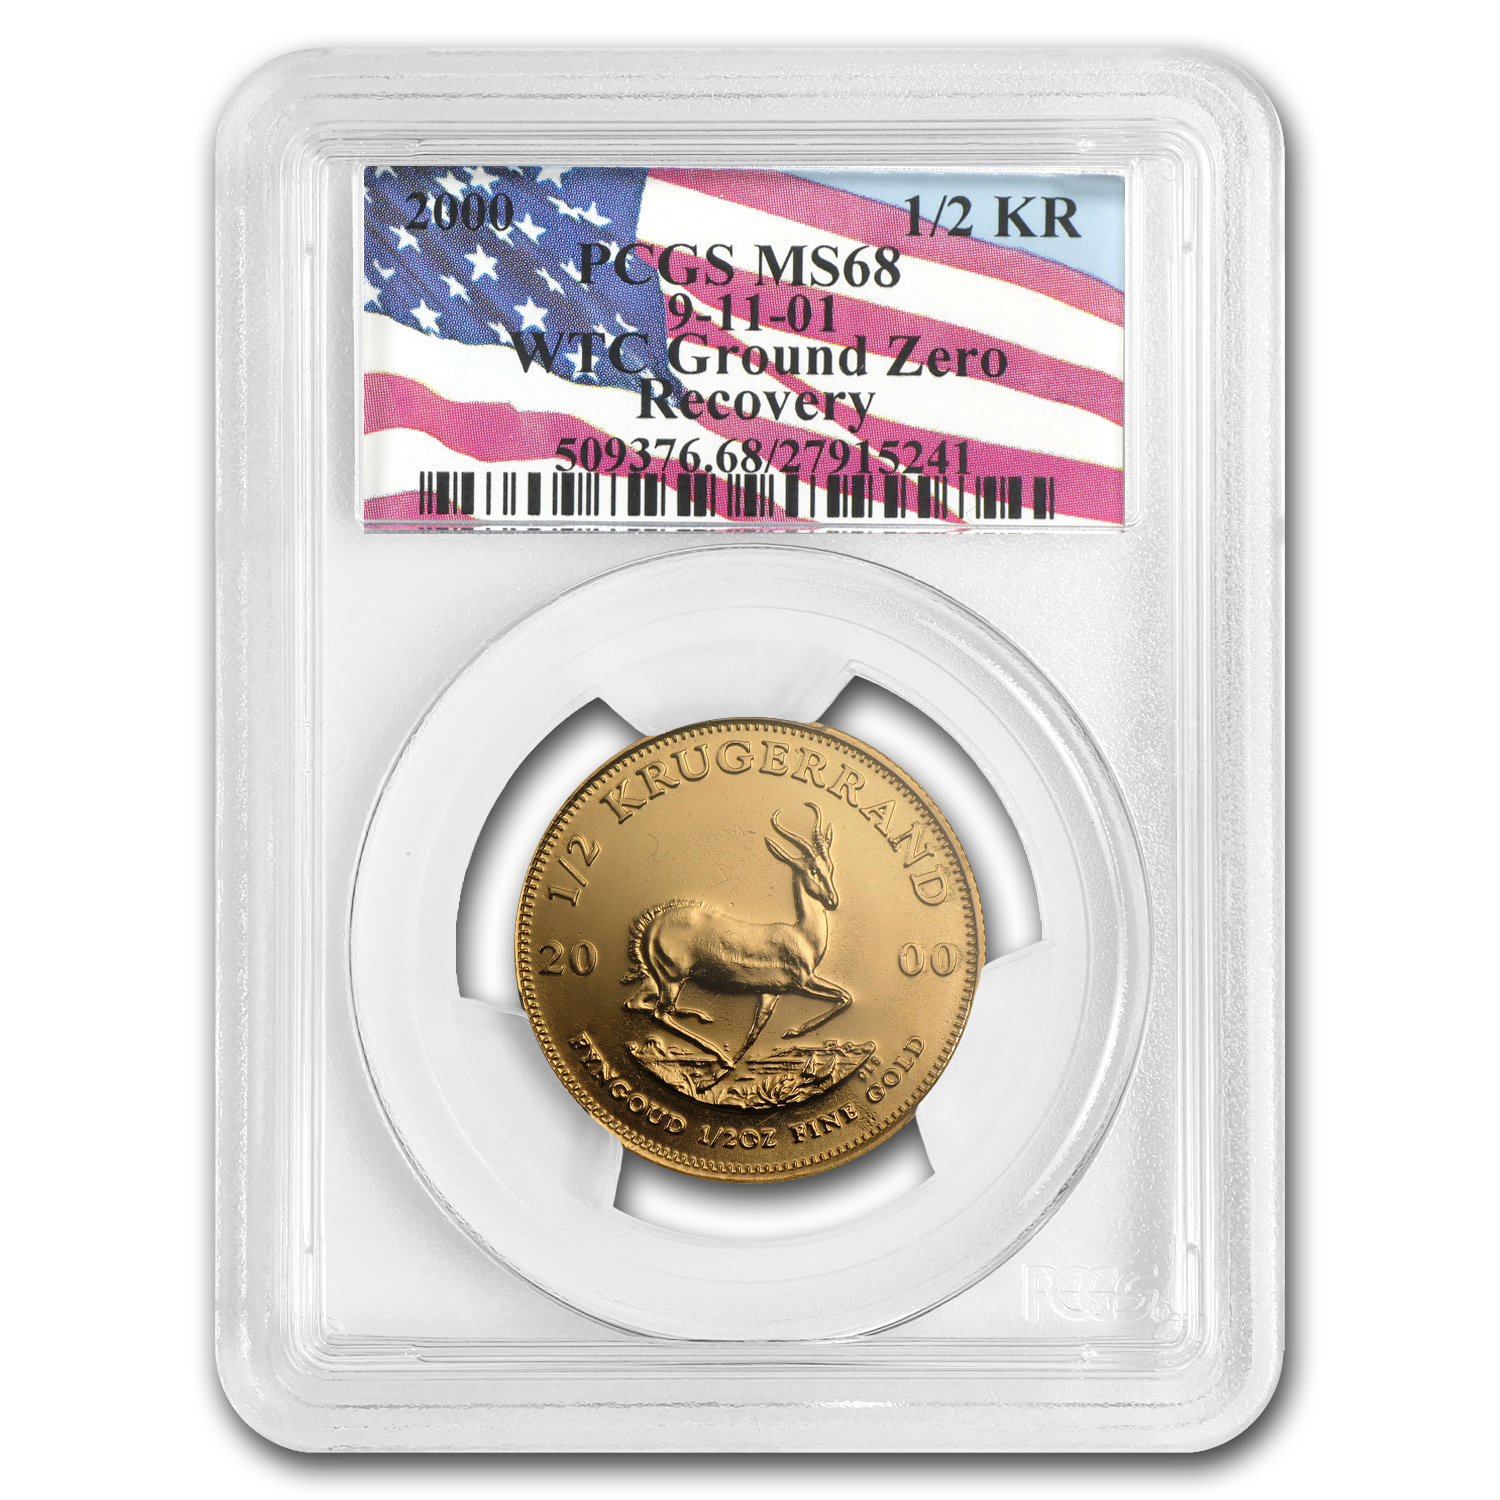 2000 South Africa 1/2 oz Gold Krugerrand MS-68 PCGS (WTC)